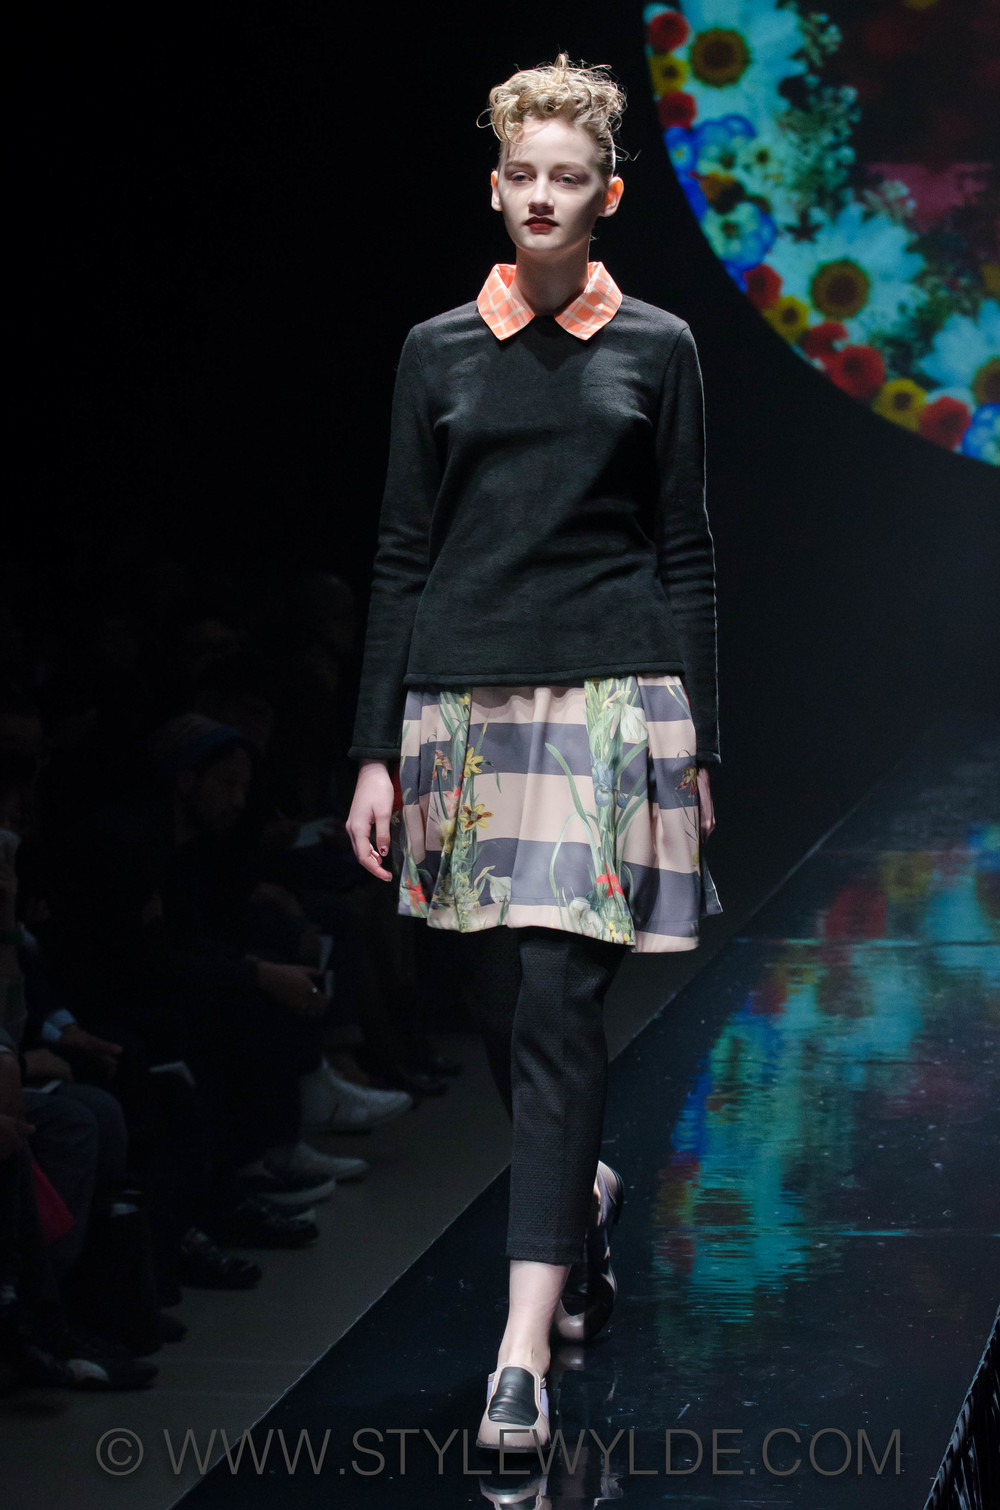 StyleWylde_INProcess_AW14_edited (1 of 1)-34.jpg